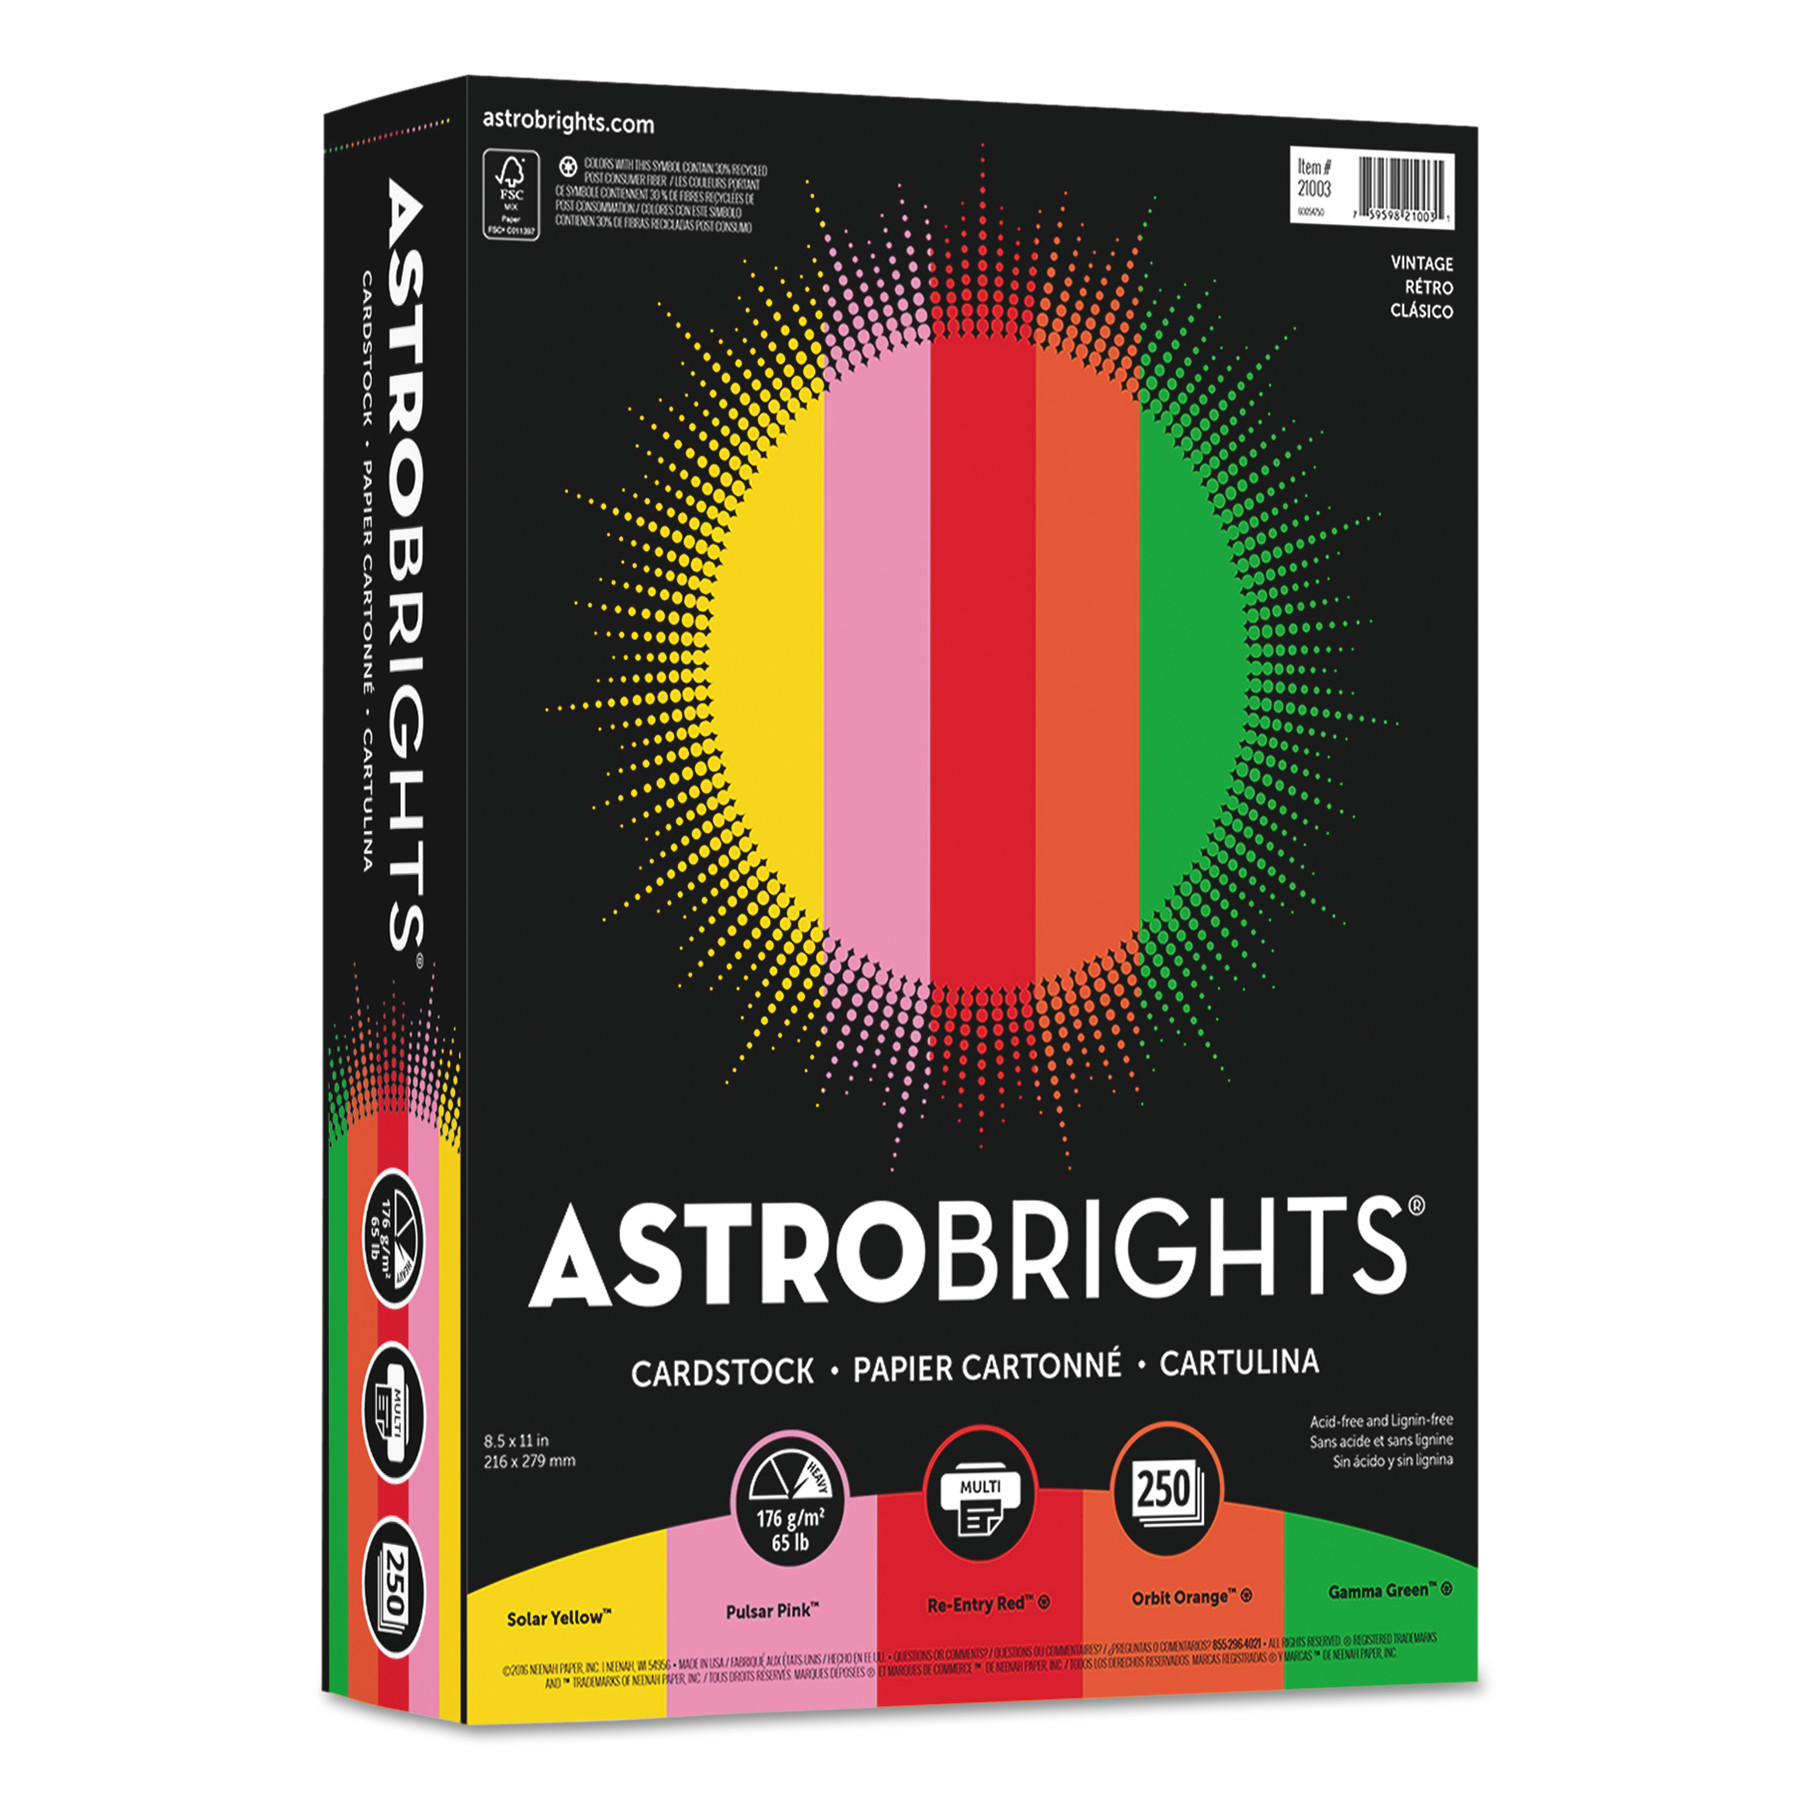 Astrobrights Color Cardstock, 65lb, 8 1/2 x 11, Assorted, 250 Sheets -WAU21003